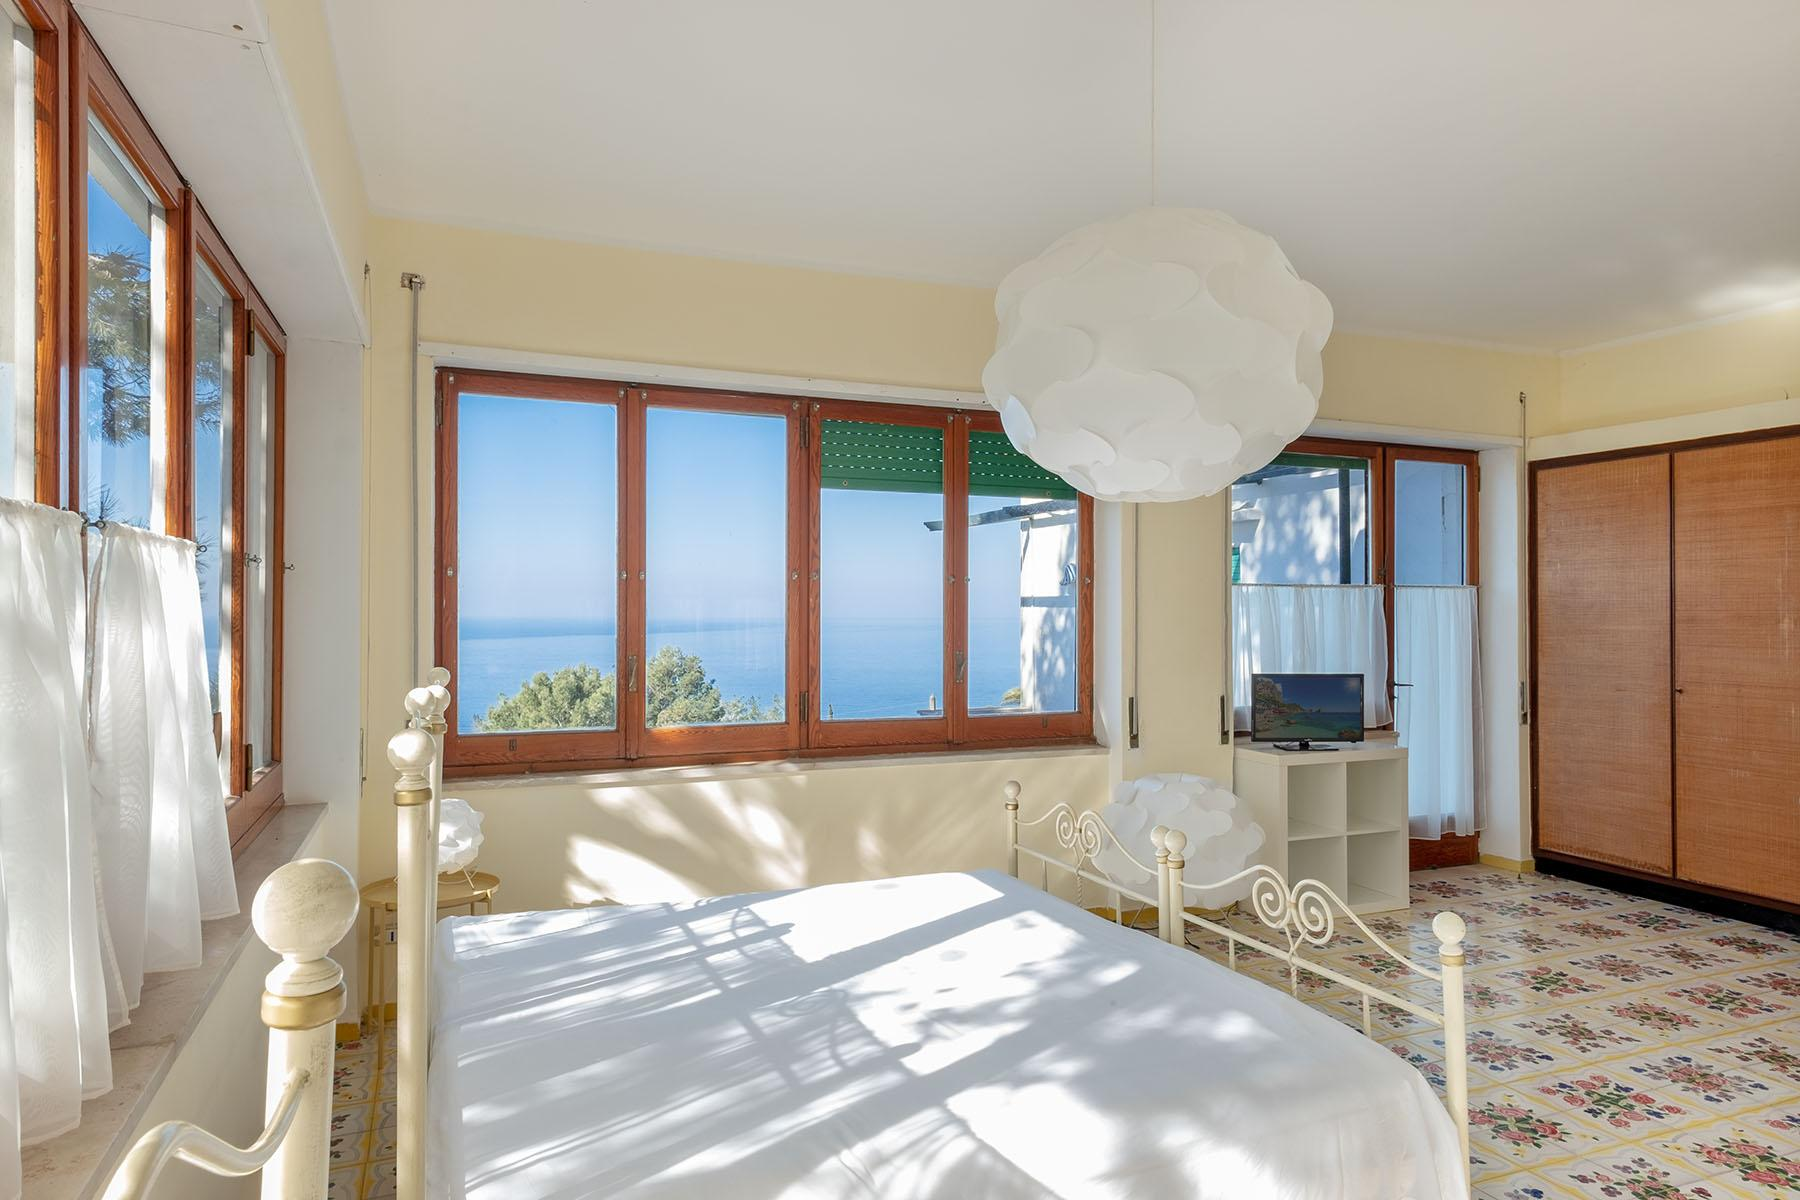 Wonderful villa with garden and seaview in Anacapri - 11